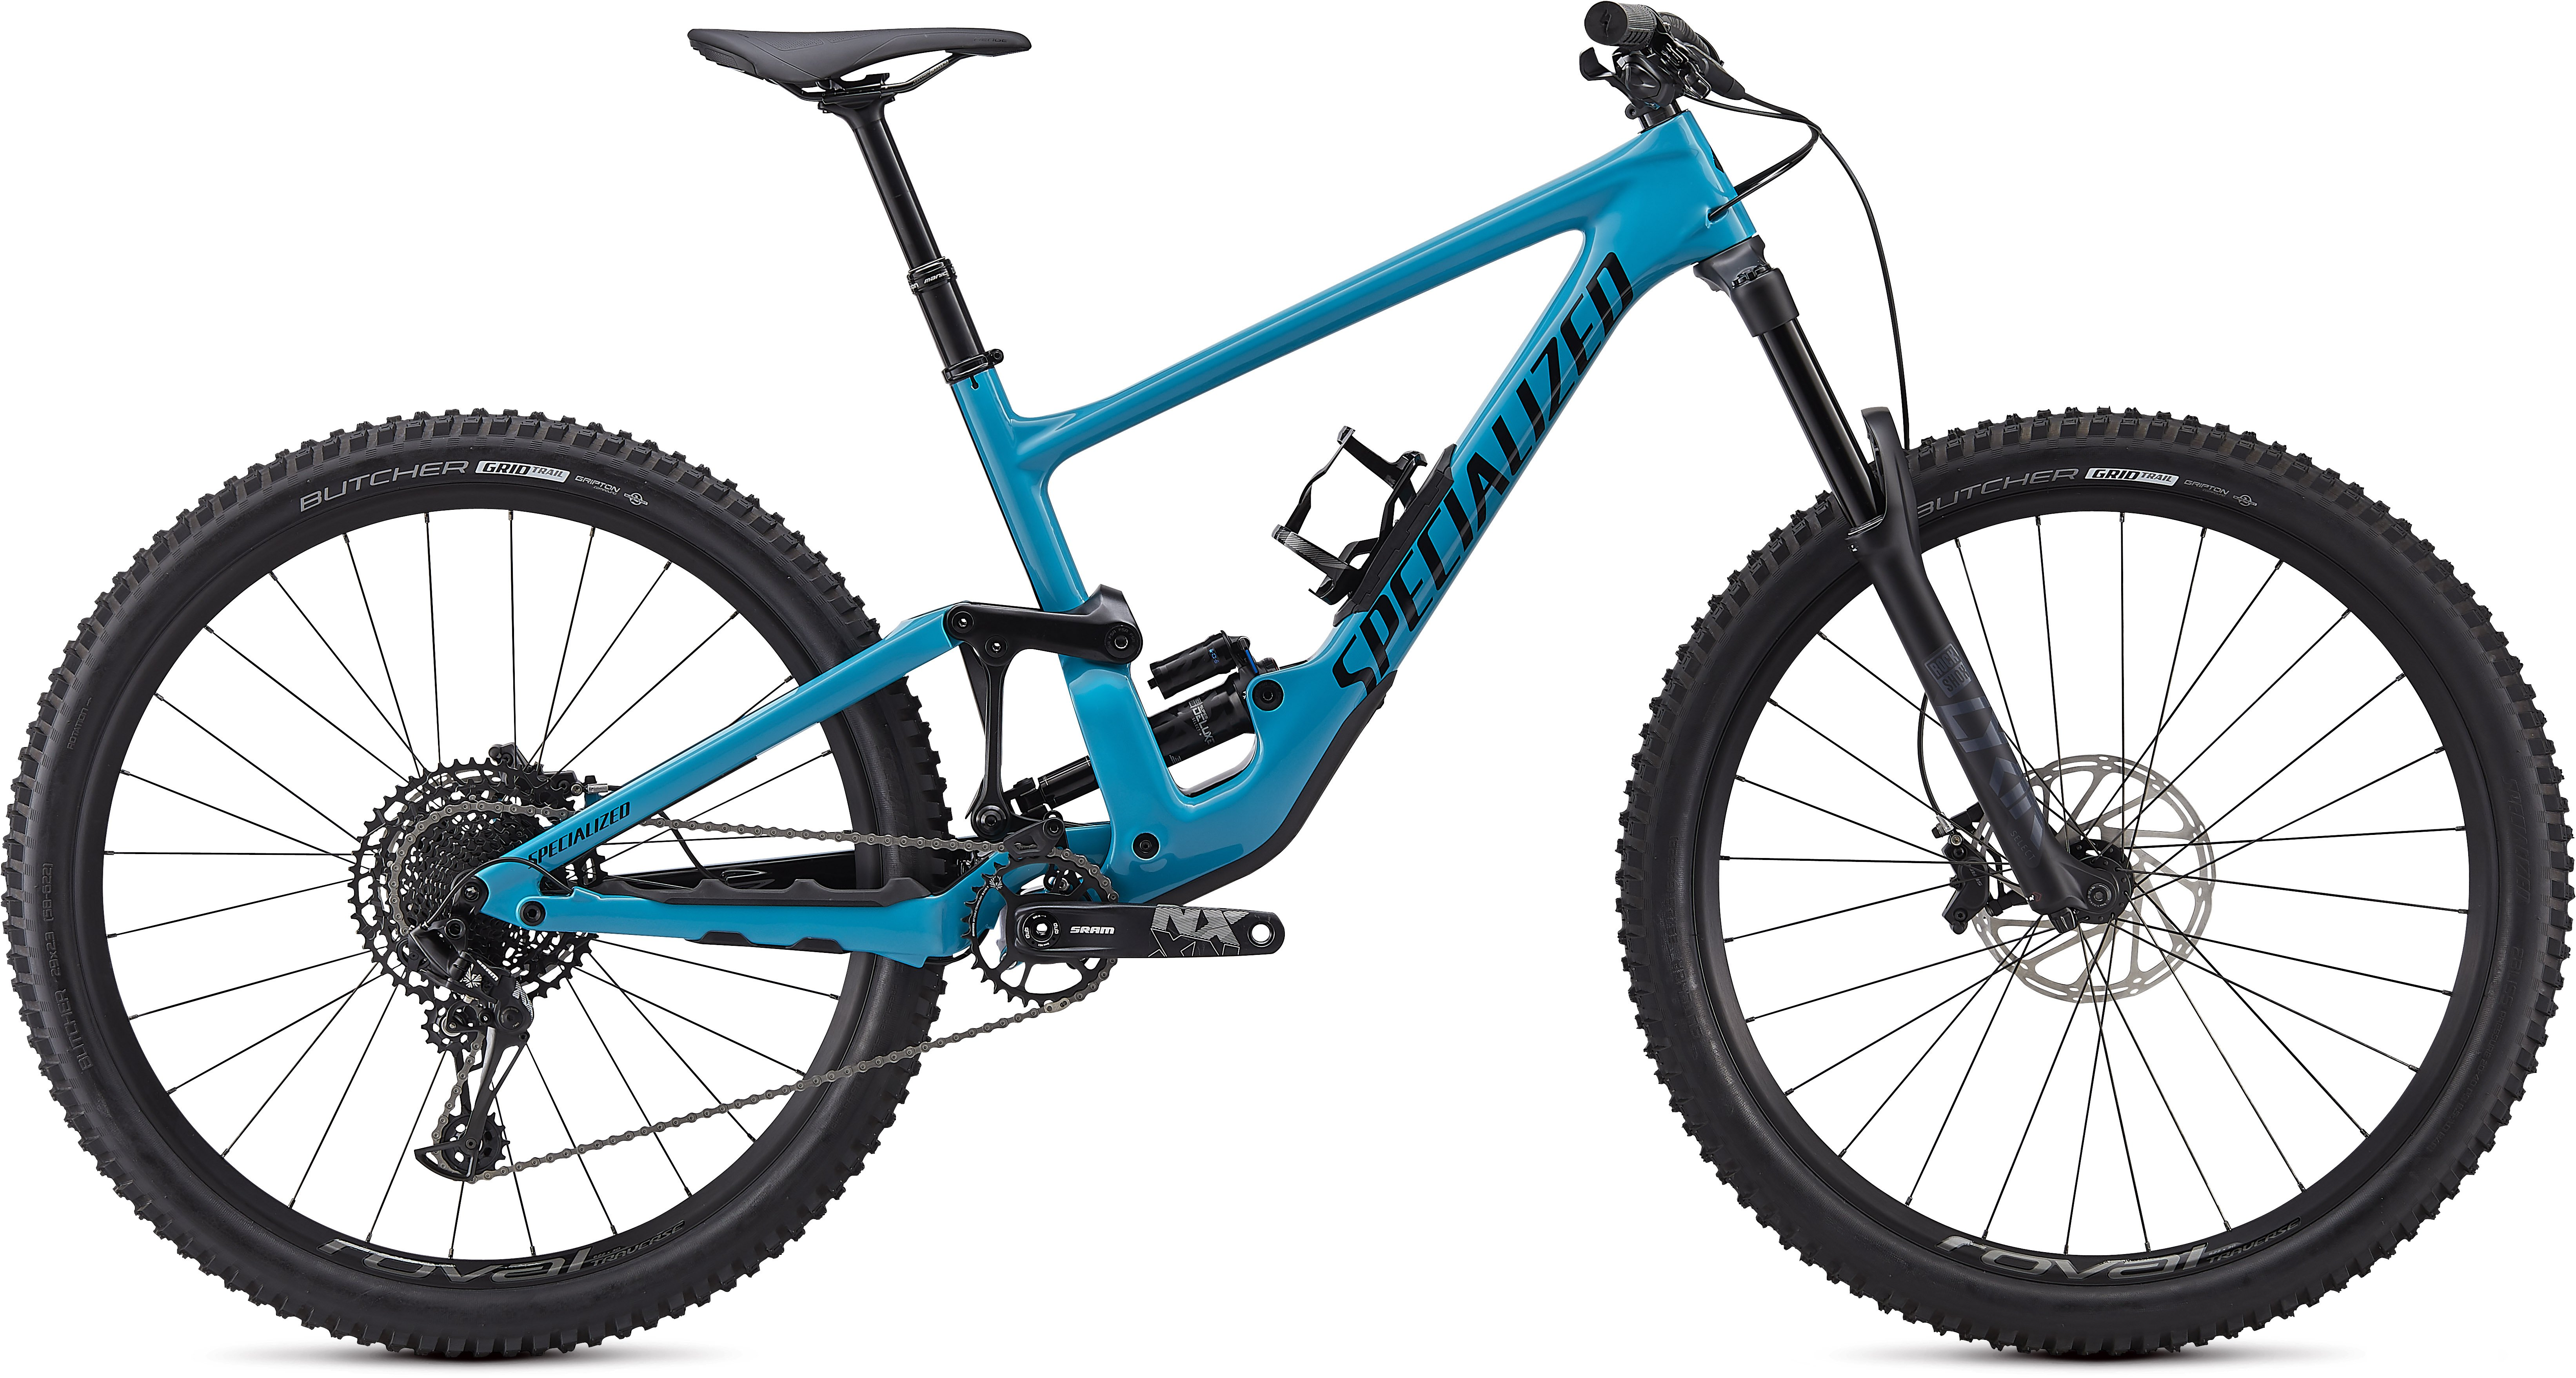 93620-51_ENDURO-COMP-CARBON-29-AQA-FLORED-BLK_HERO.jpg